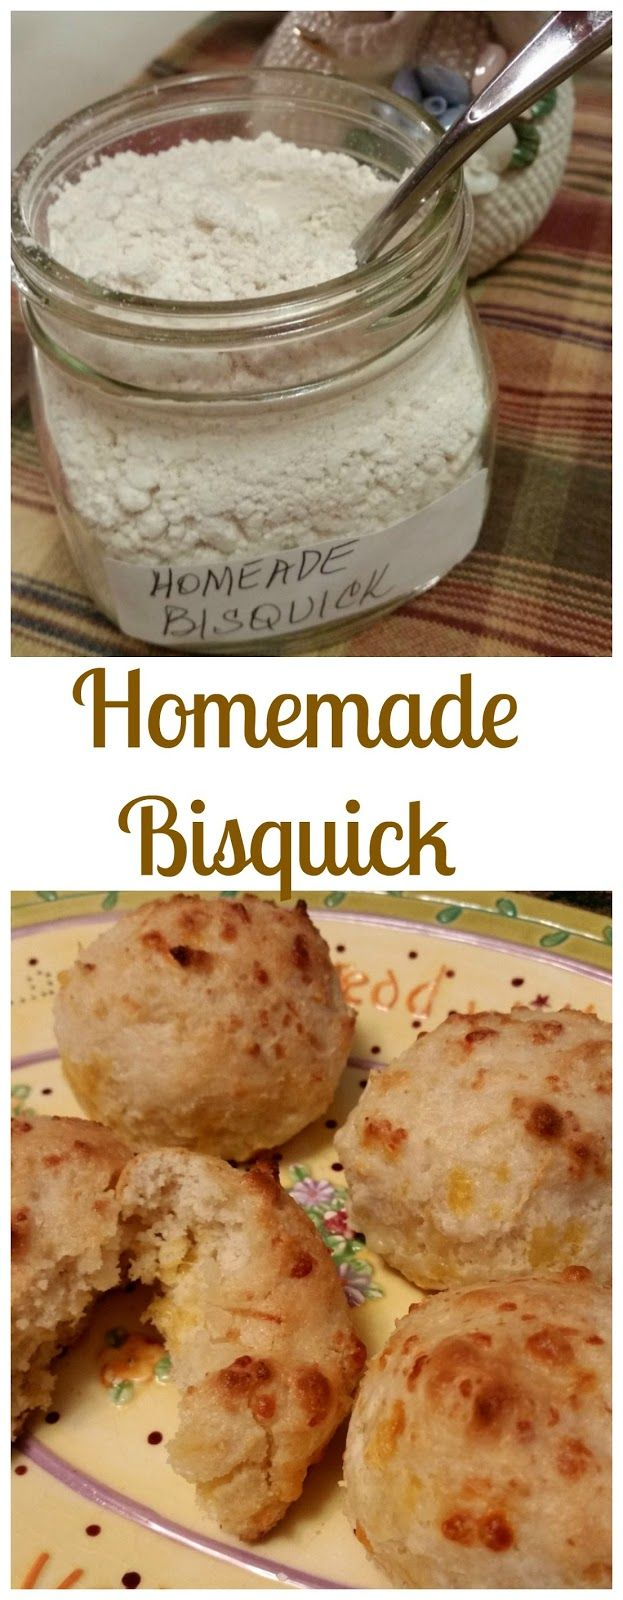 I've used this simple recipe for years. Use it just as you would Bisquick.  It's really great to have this on hand with all the holiday b...